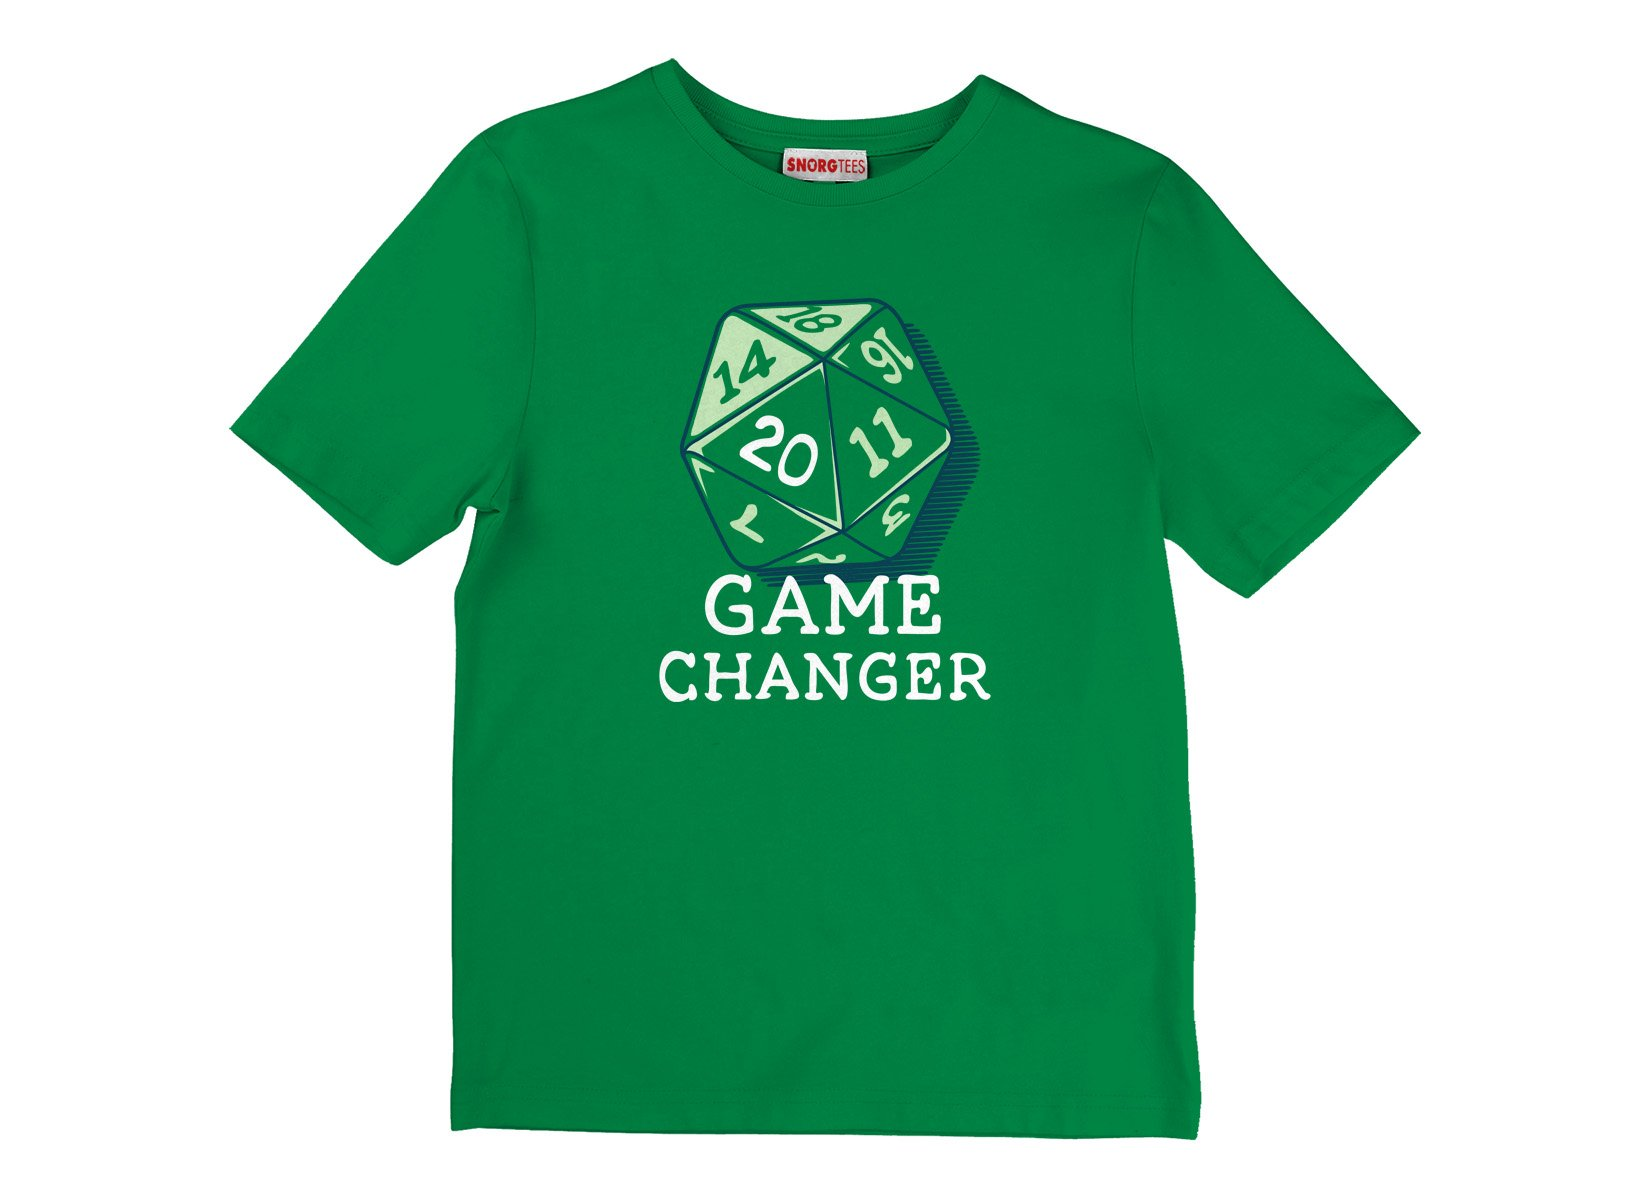 Game Changer on Kids T-Shirt